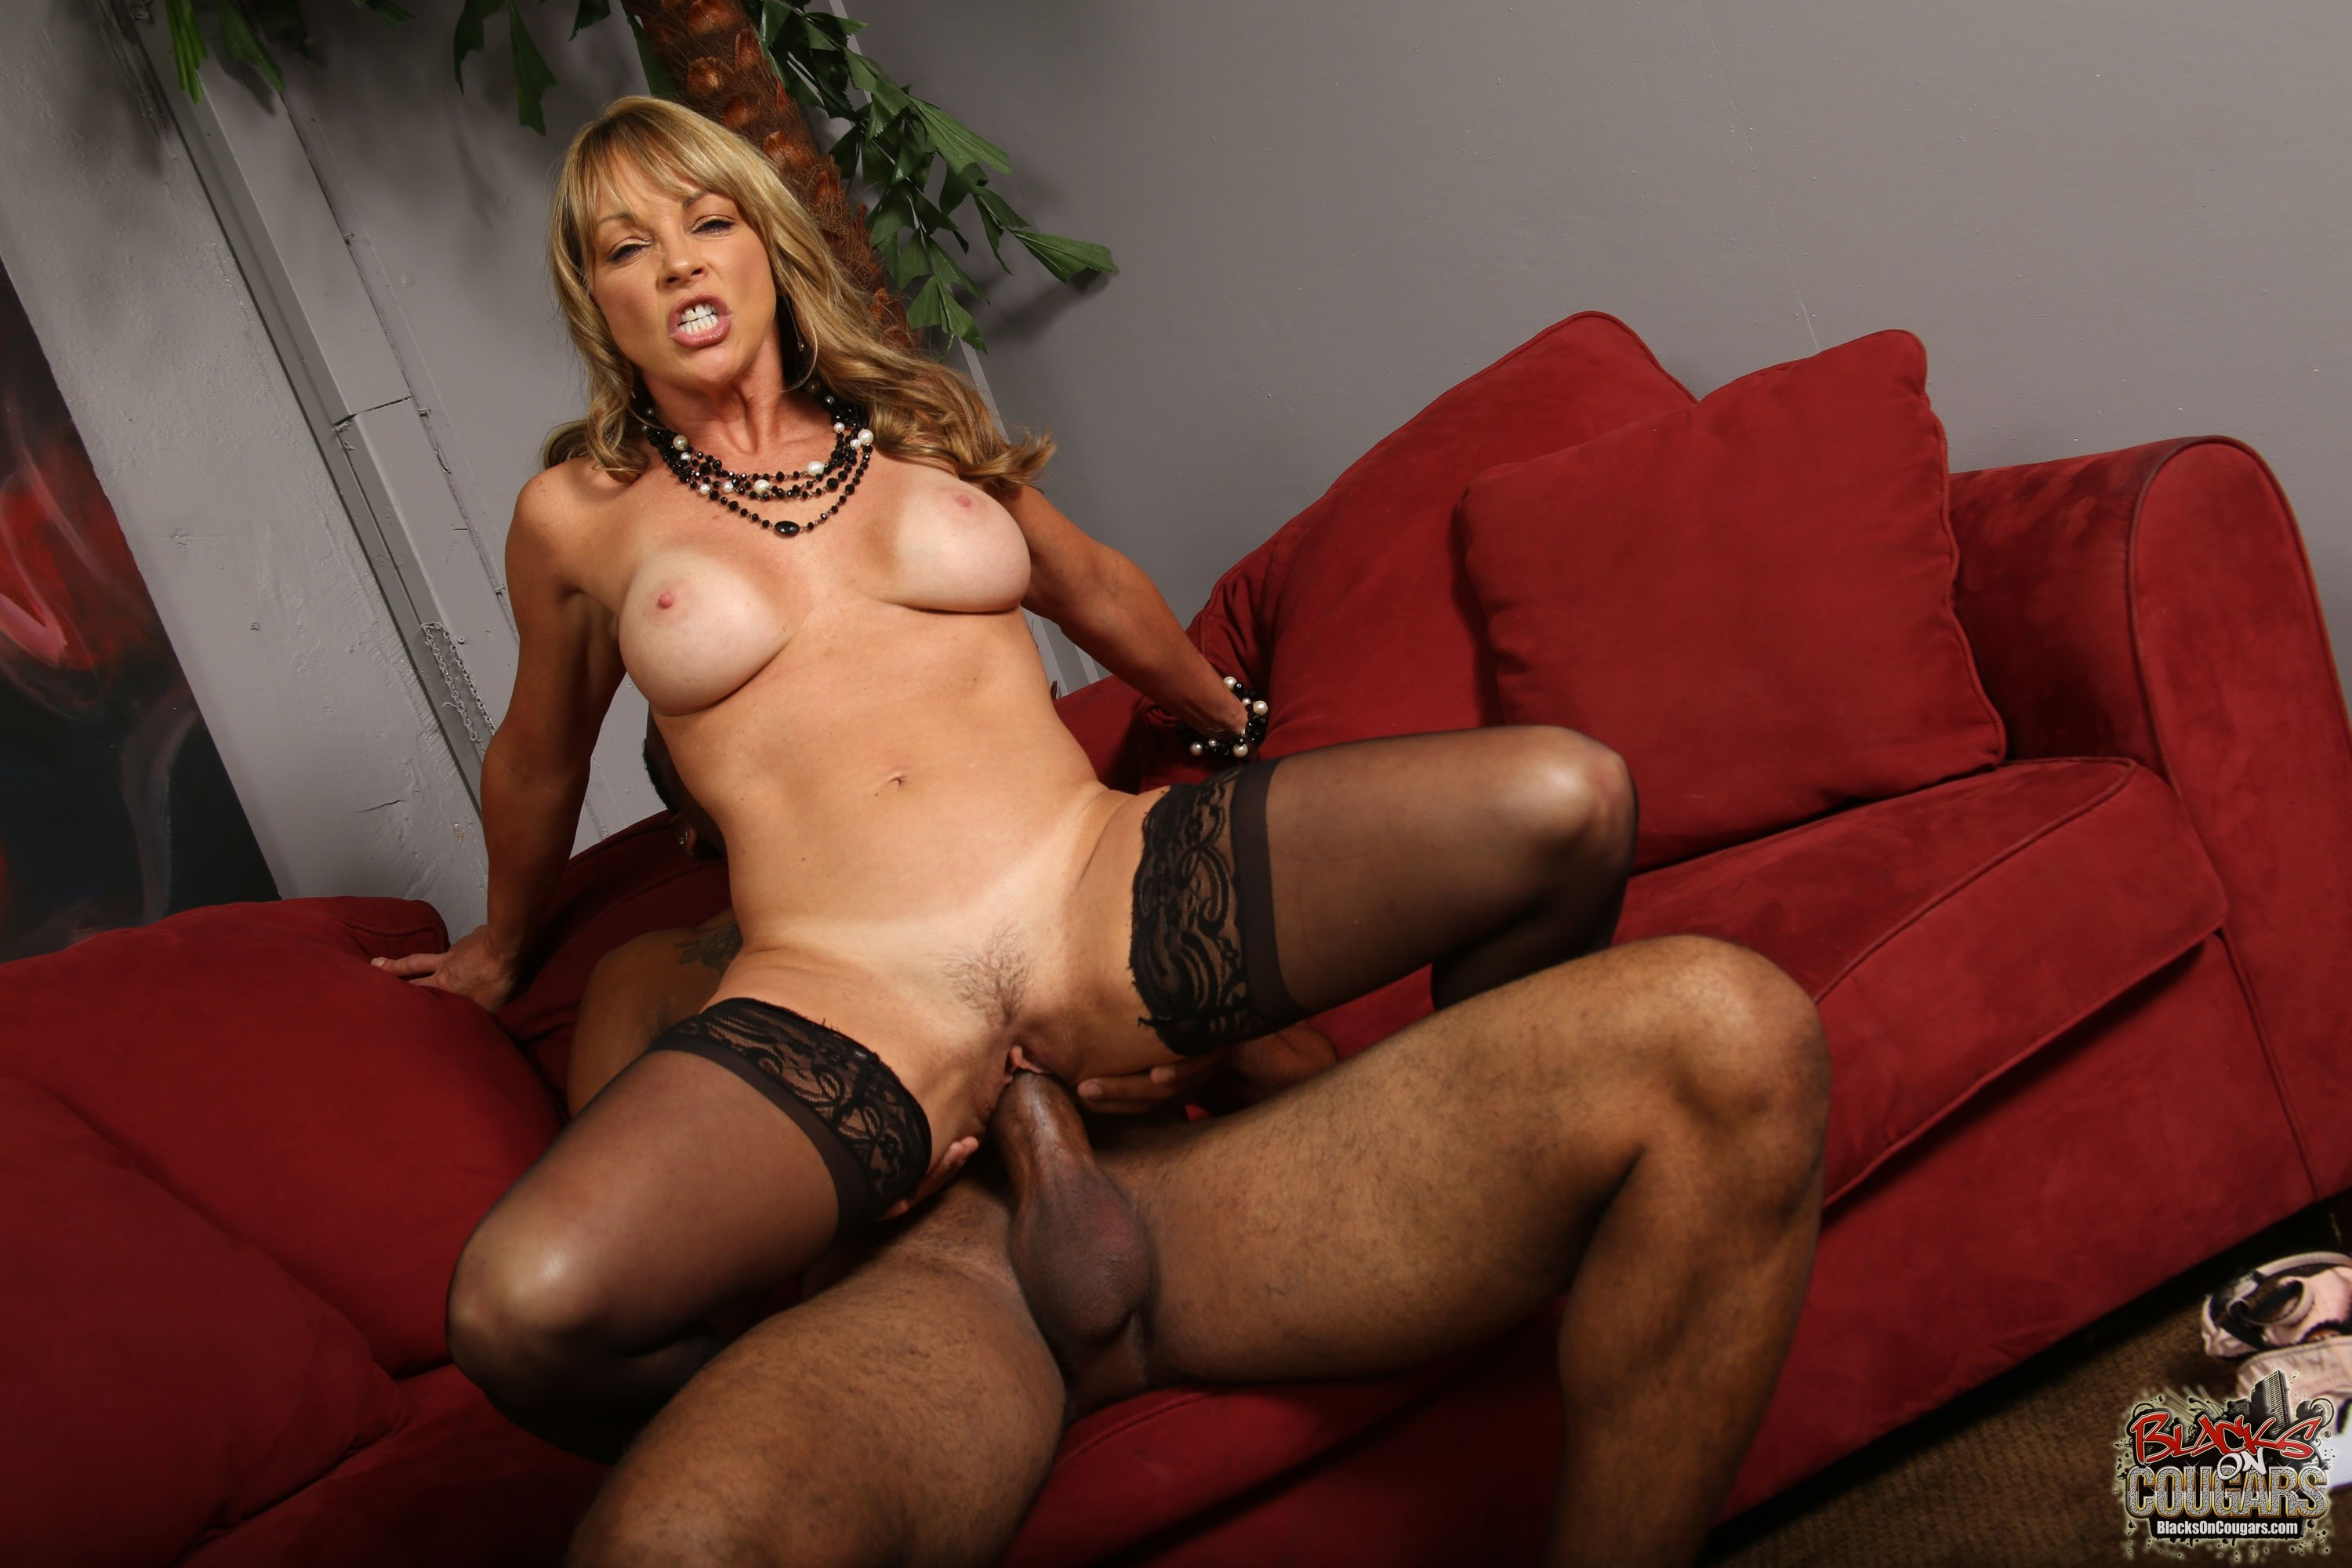 Cougar on top porn — pic 13